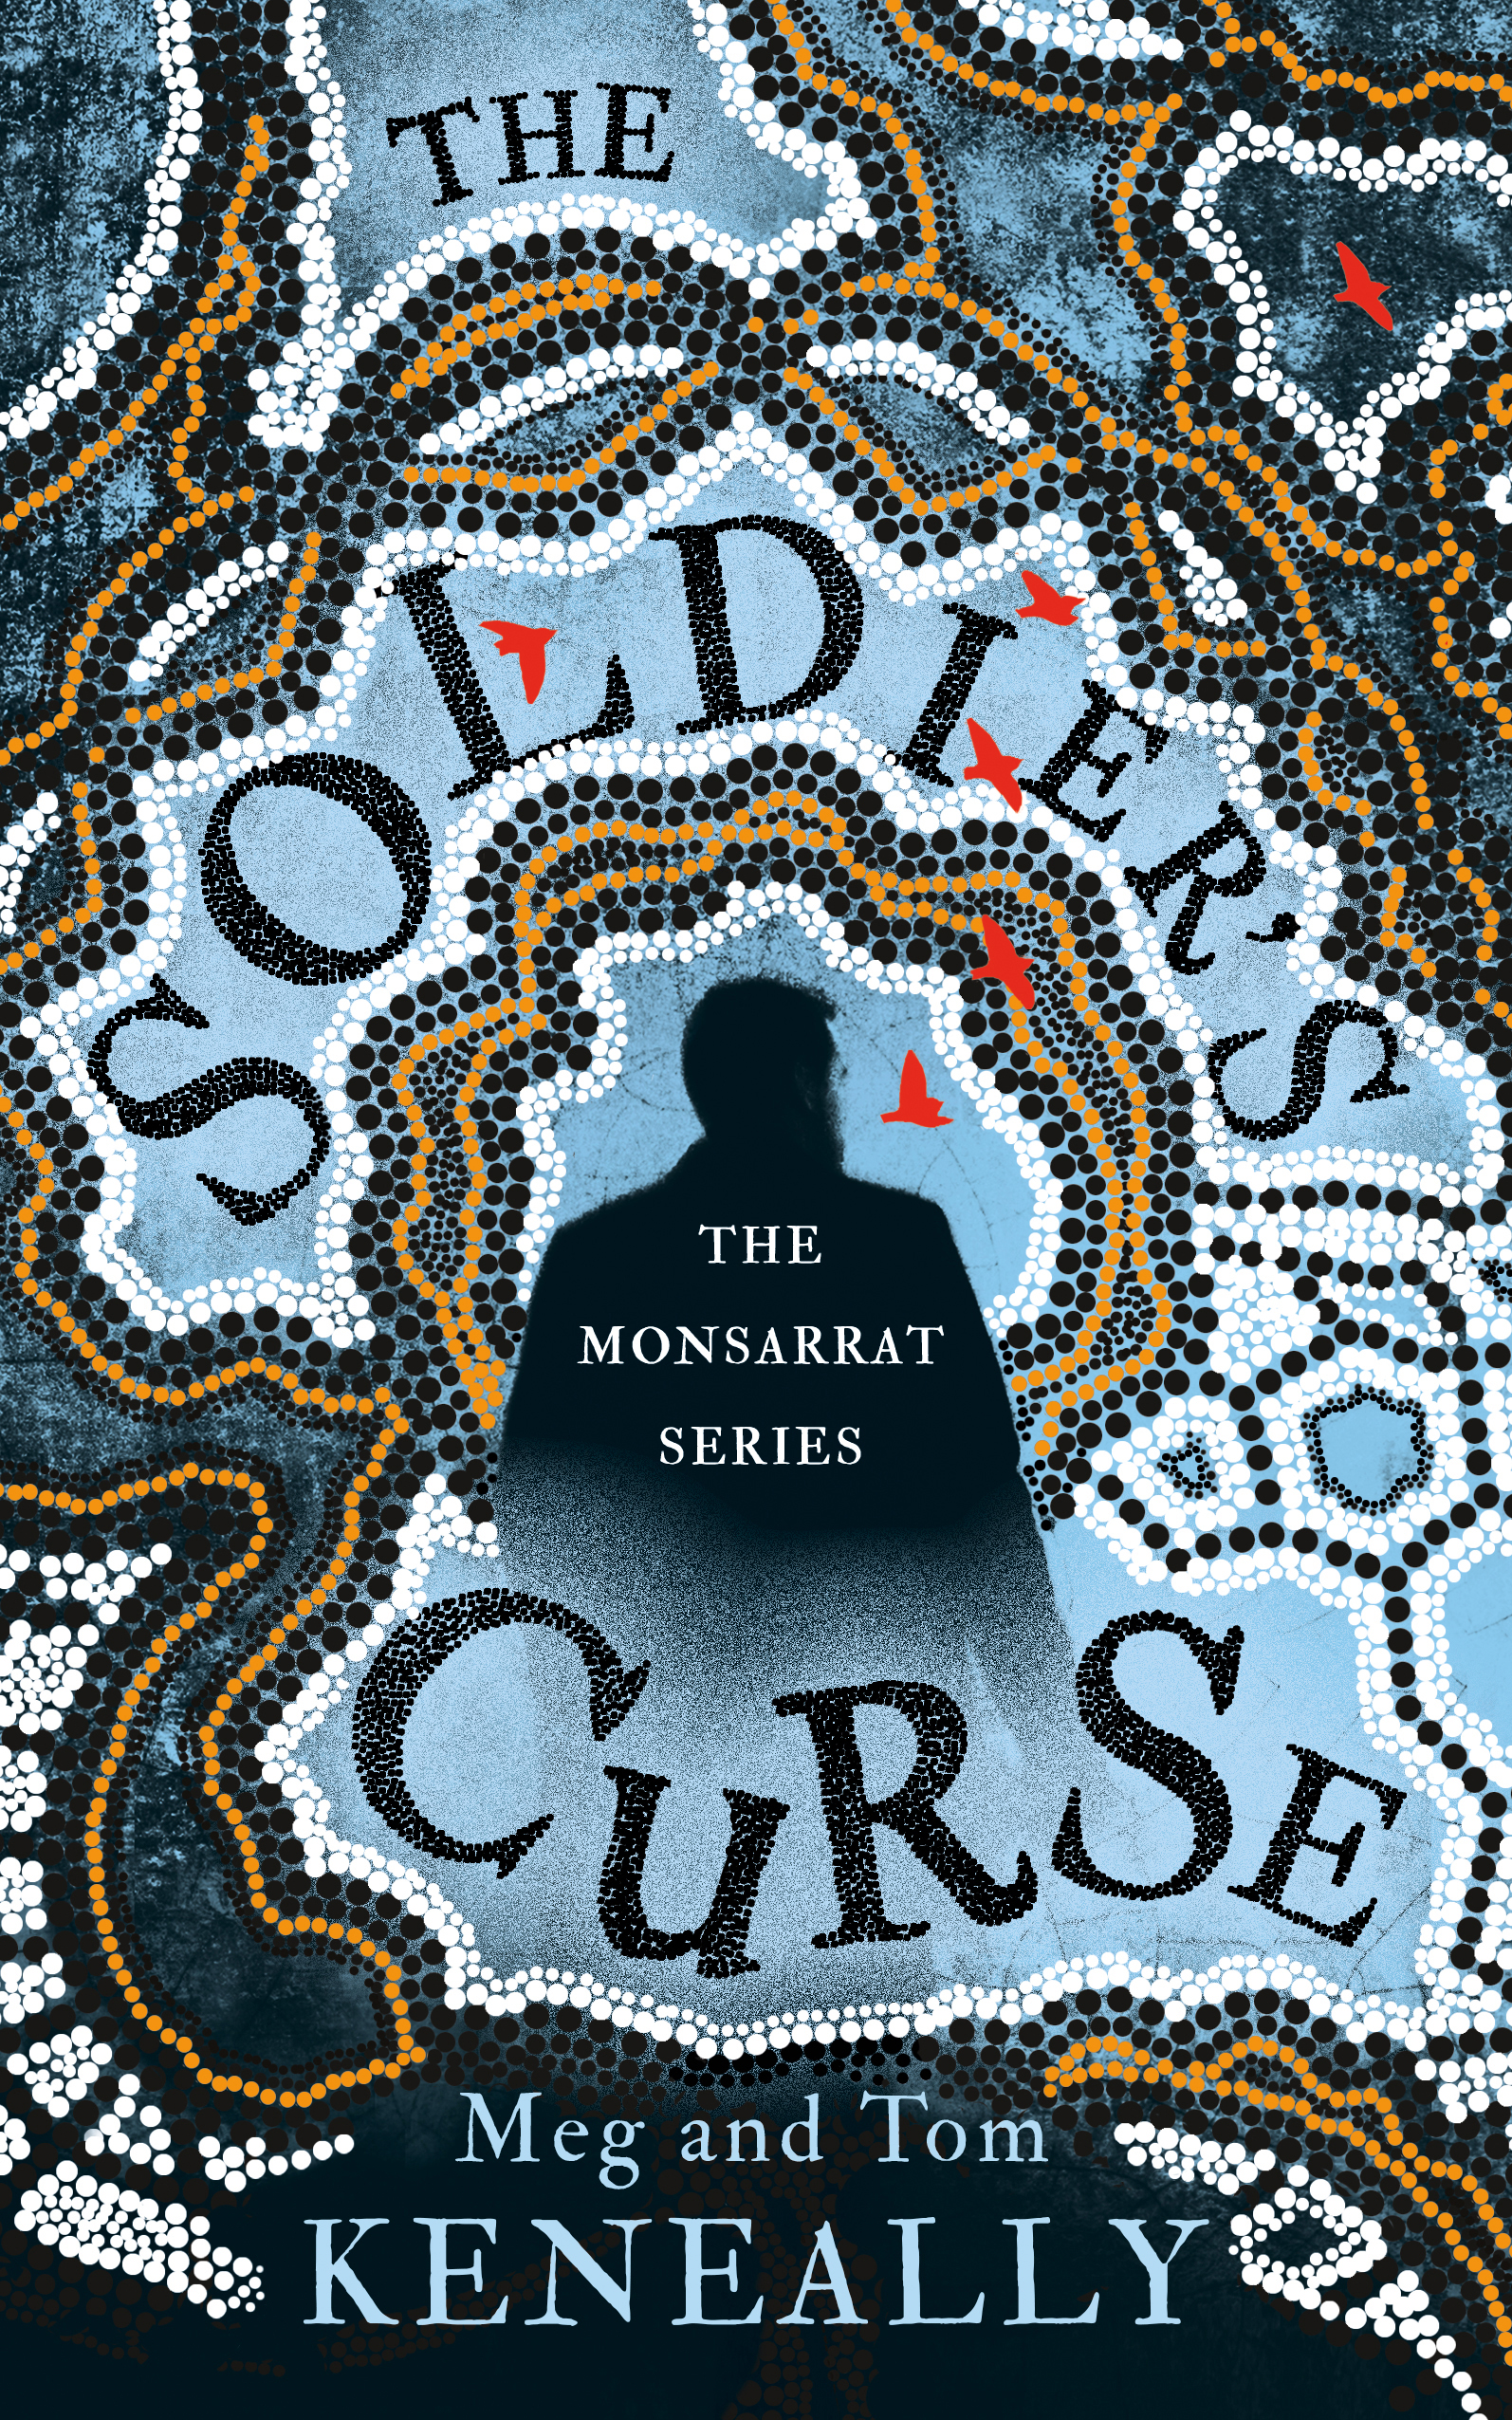 THE SOLDIER'S CURSE: Meg Keneally Talks to Crime Time